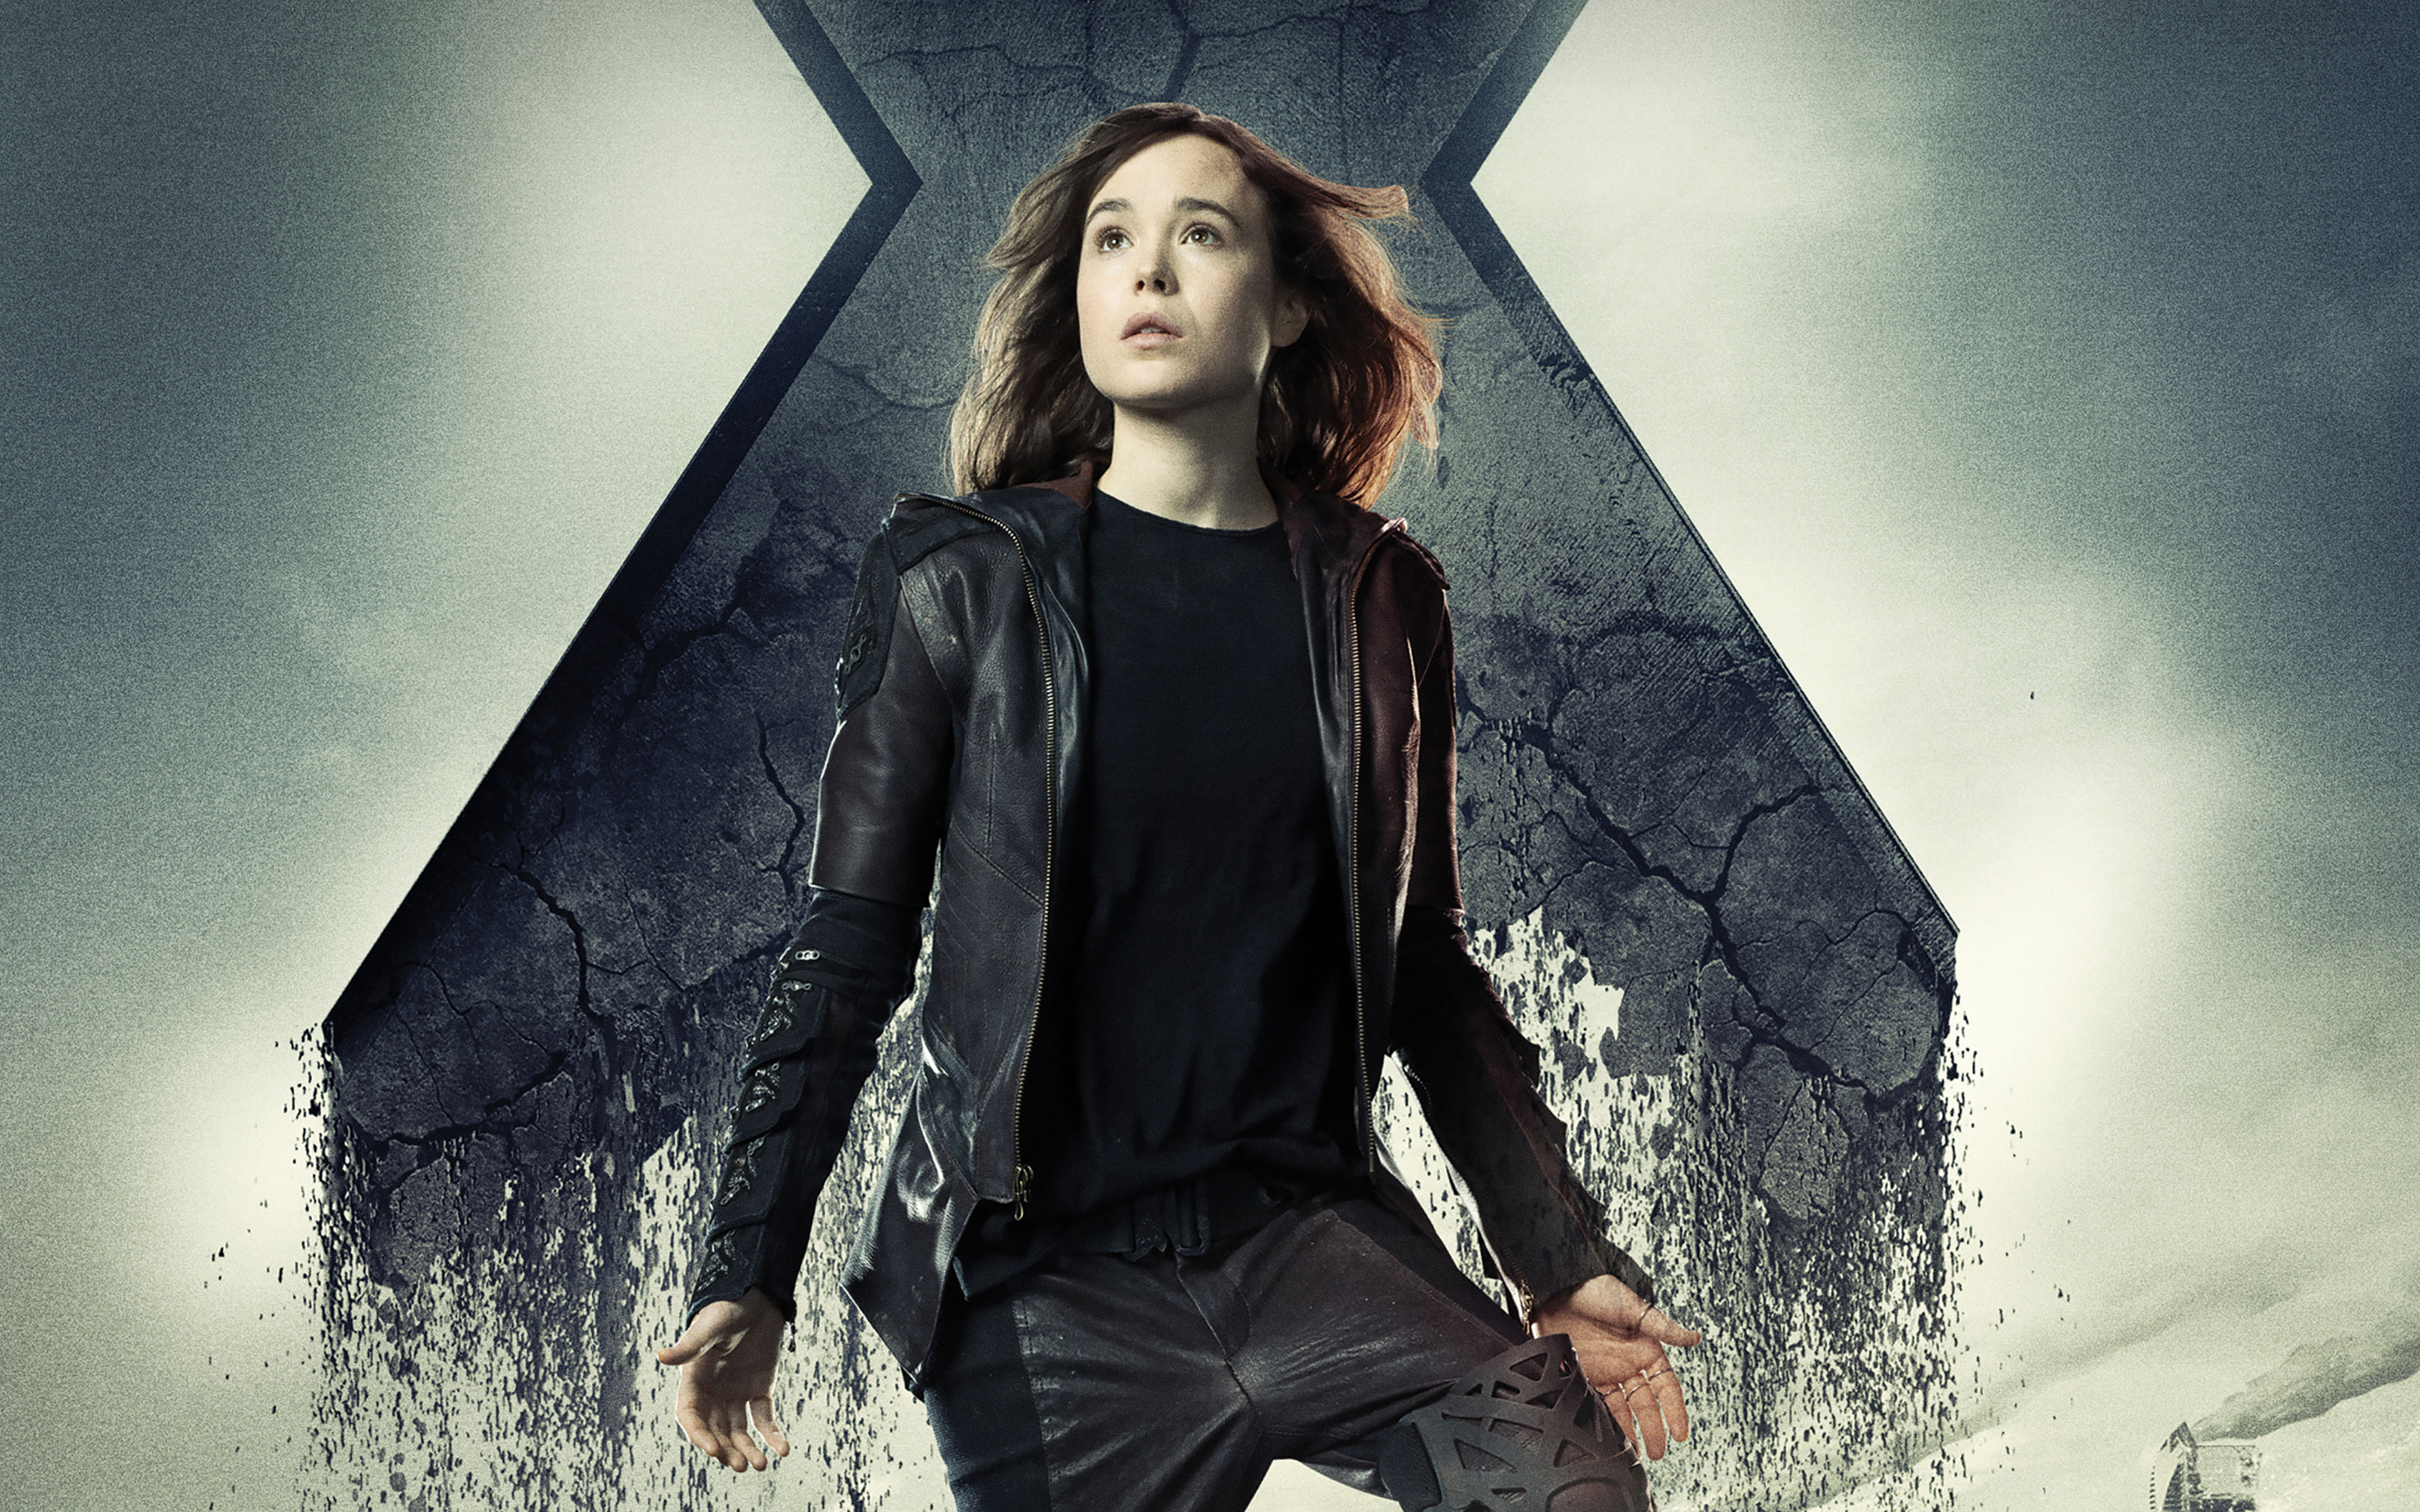 Ellen Page X Men Days of Future Past